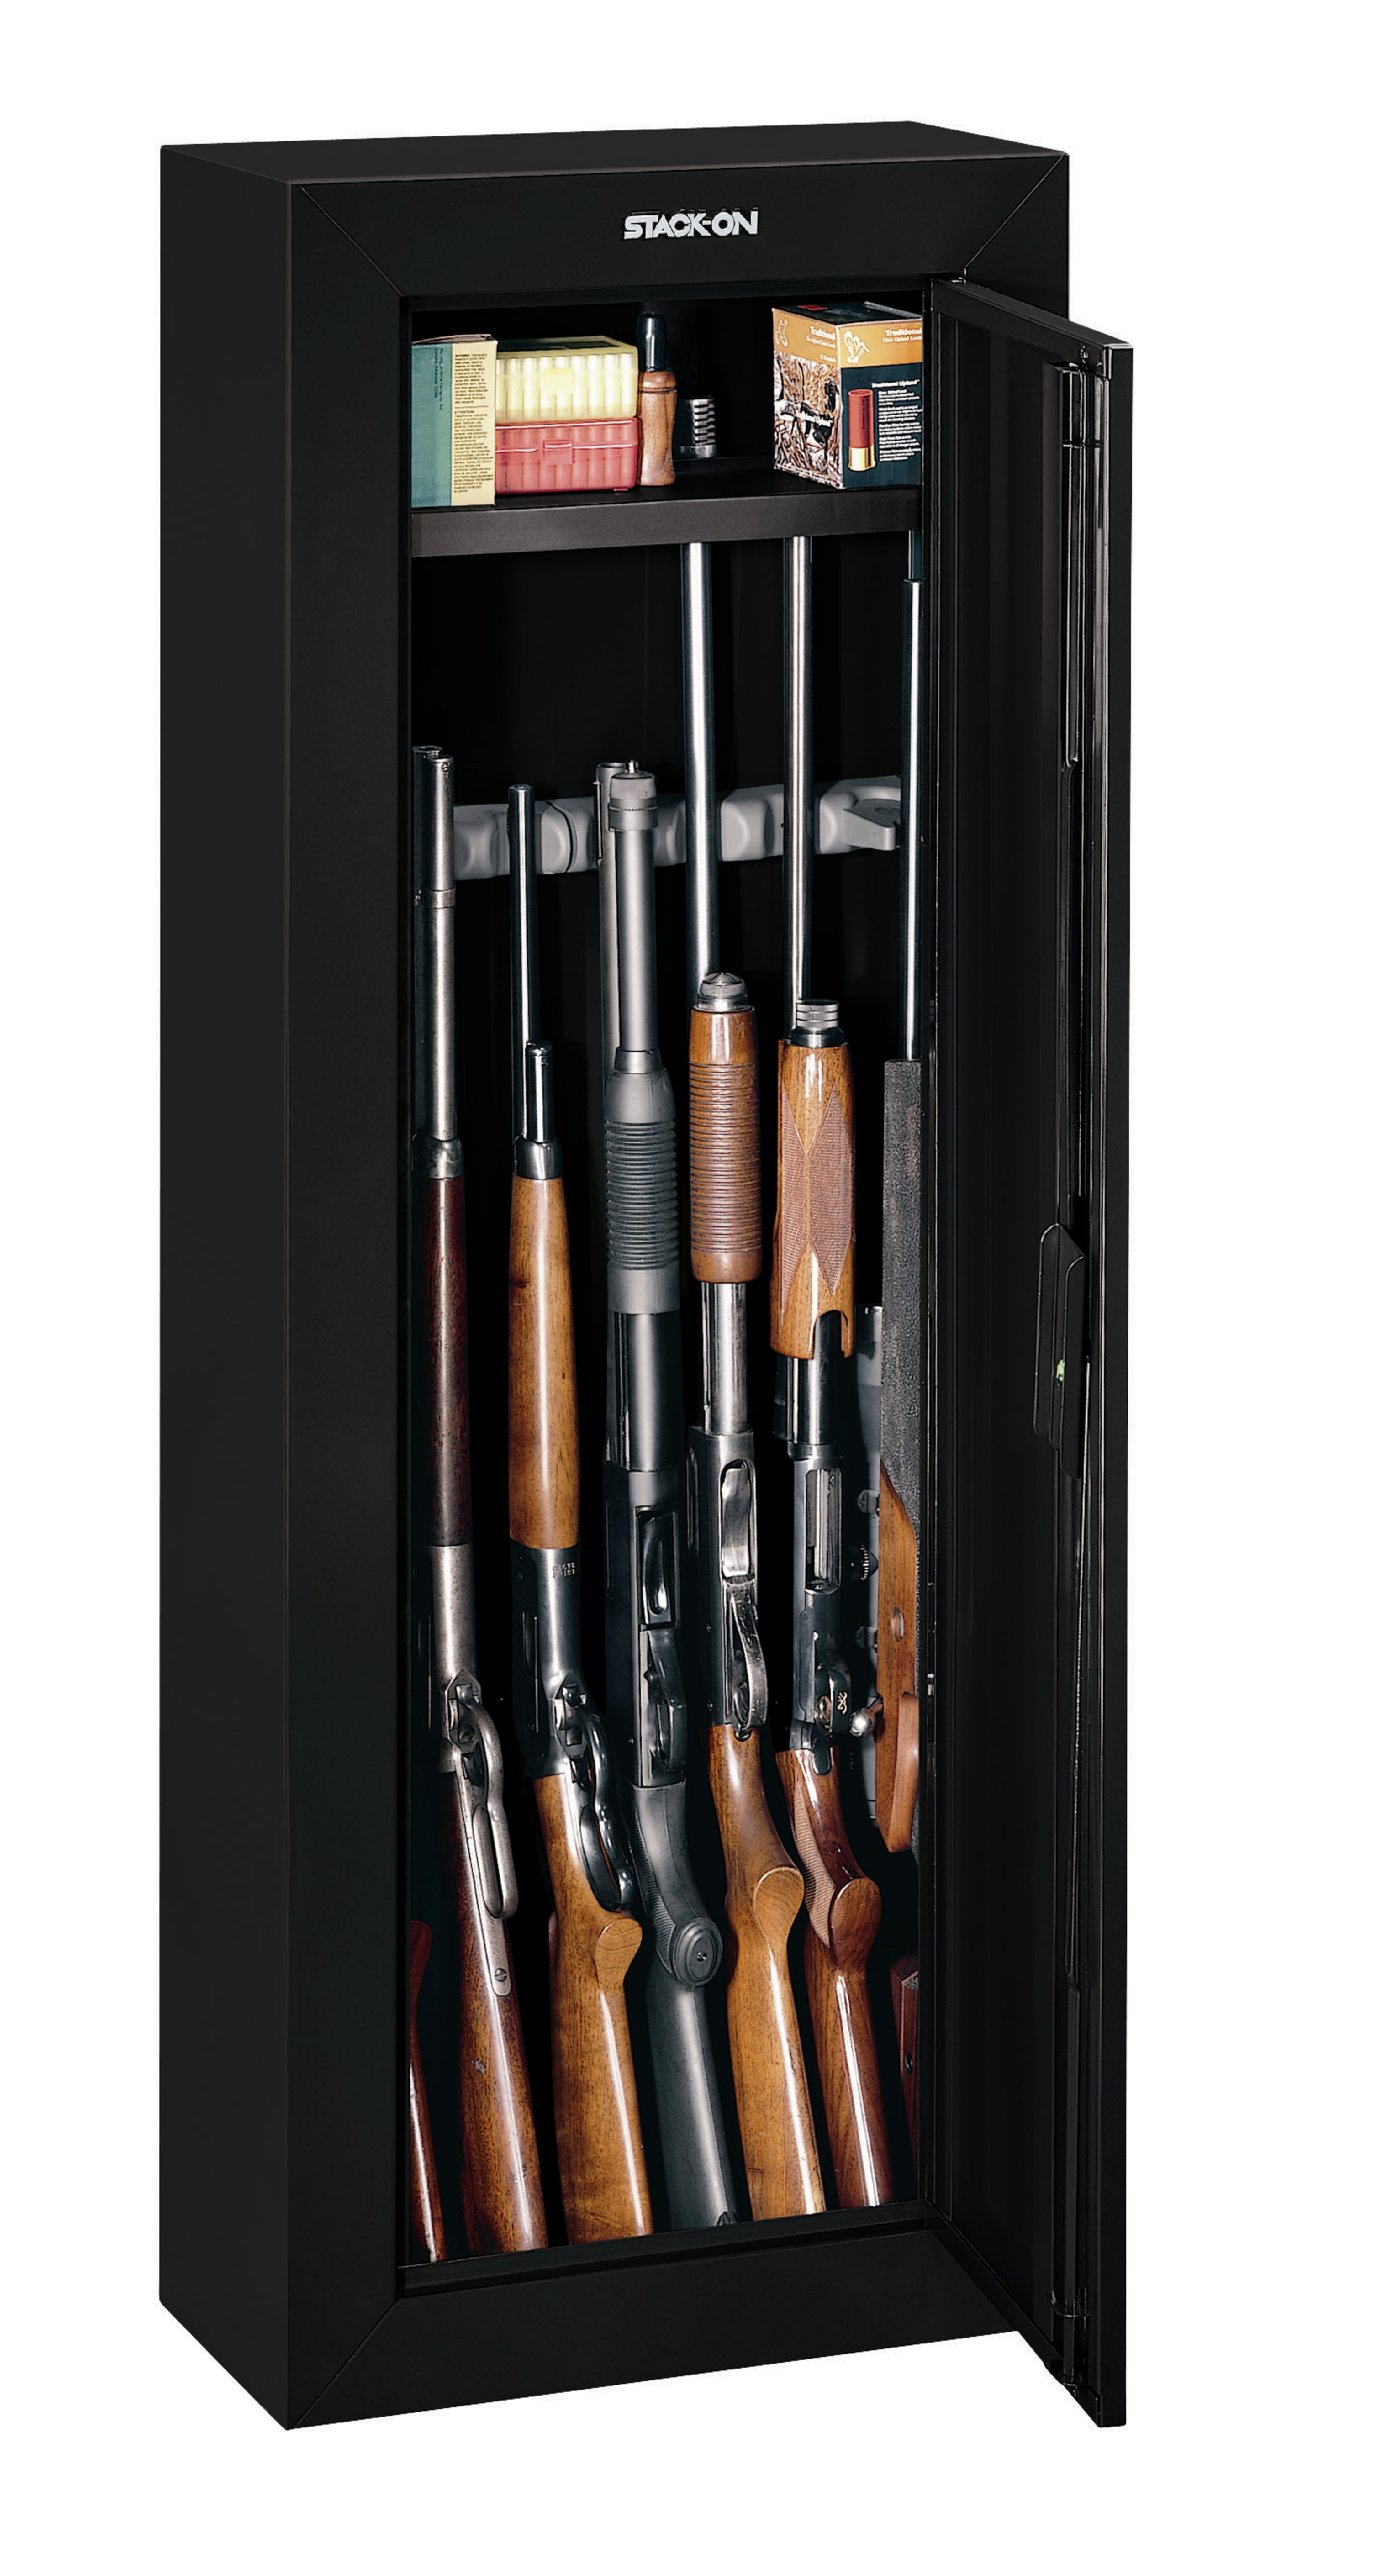 Stack-On GCB-908 Steel 8-Gun Security Cabinet, Black by Stack-On